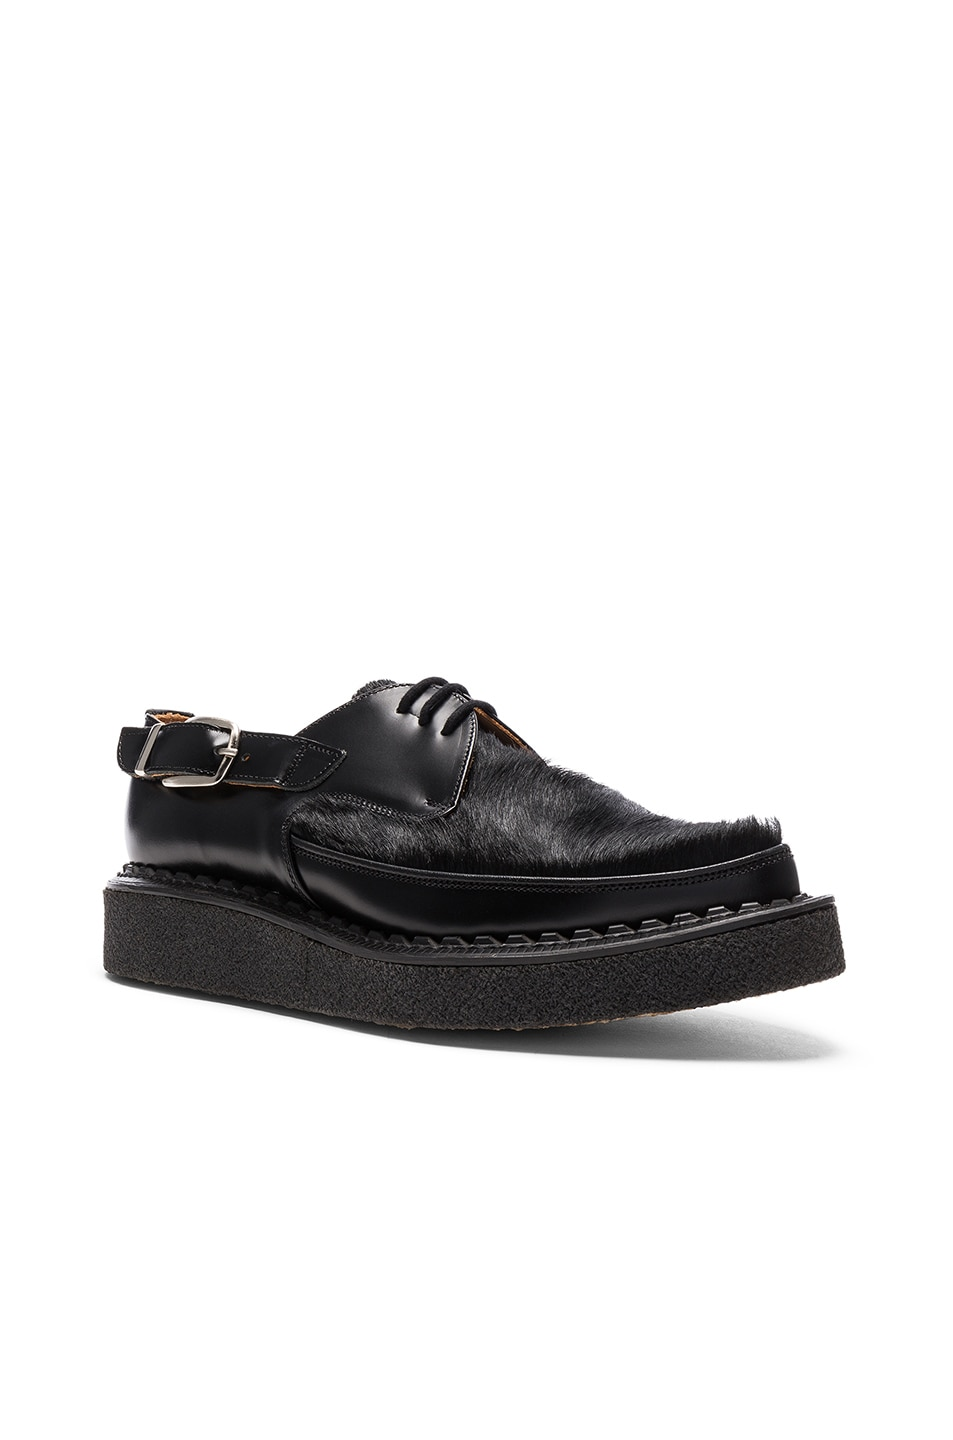 Image 1 of Comme Des Garcons Homme Plus Pony Hair George Cox Shoes in Black